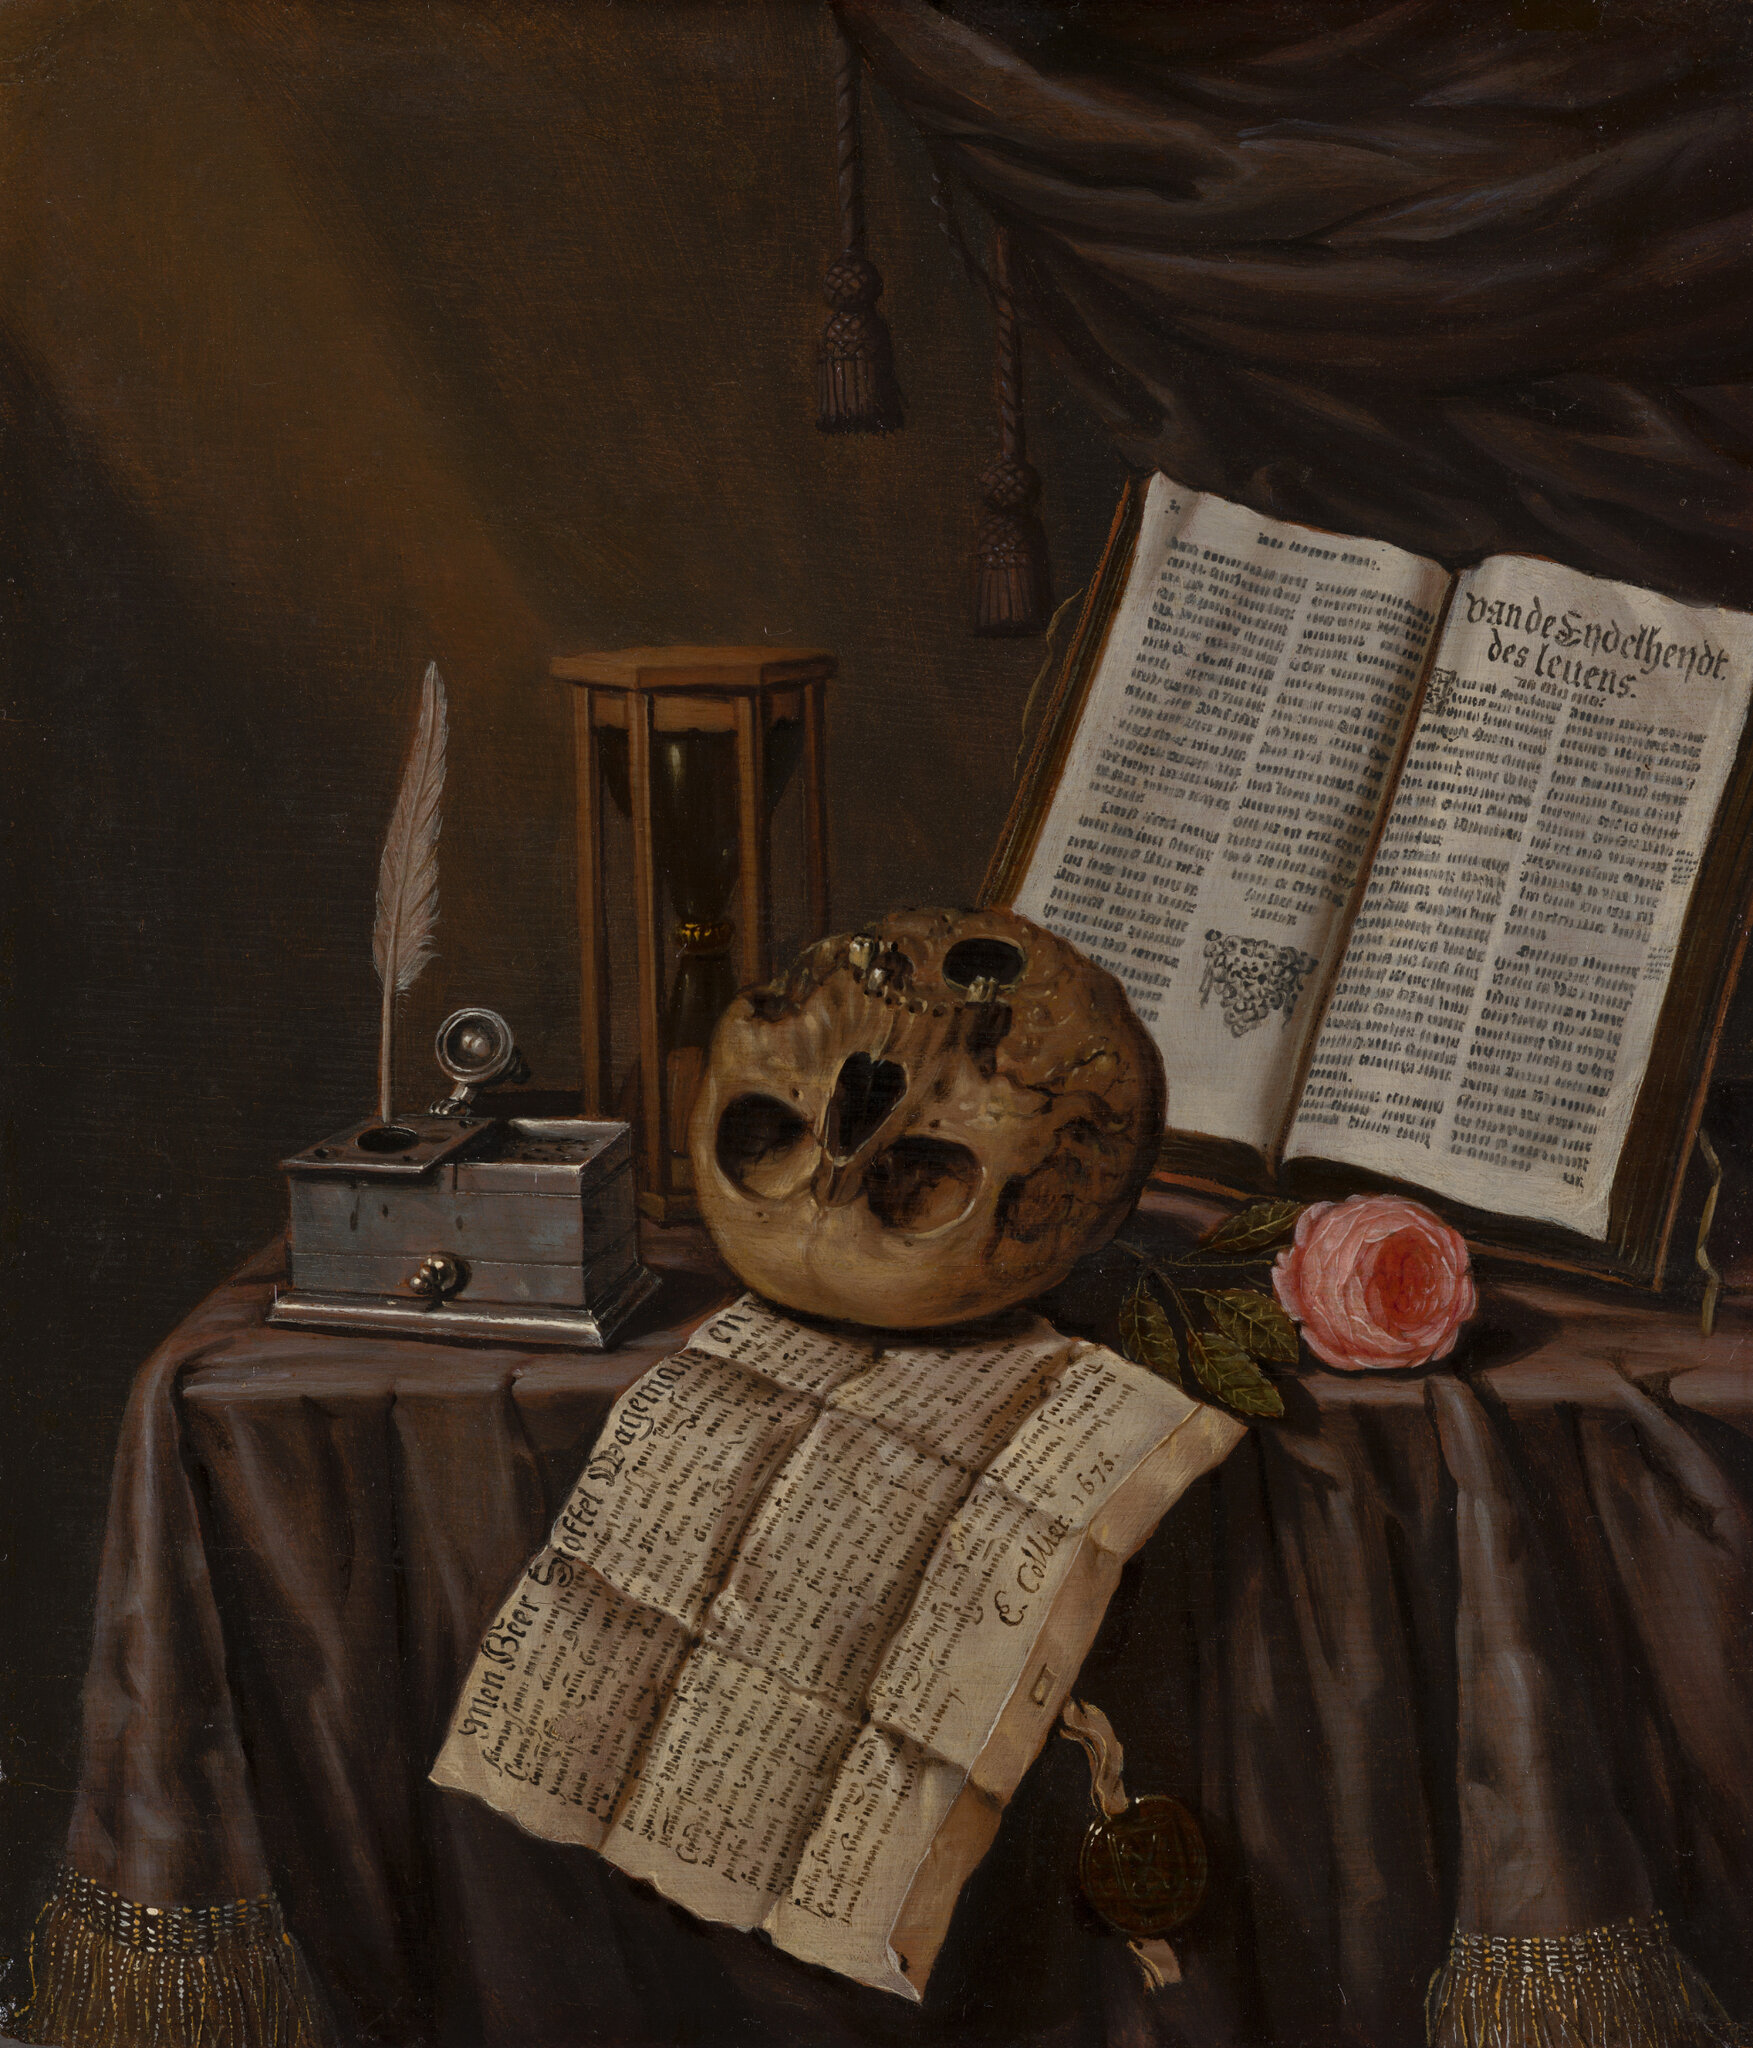 Edwaert Collier, Vanitas Still Life, 1675, oil on panel, 19.5 x 17 cm. © 2019 Mauritshuis